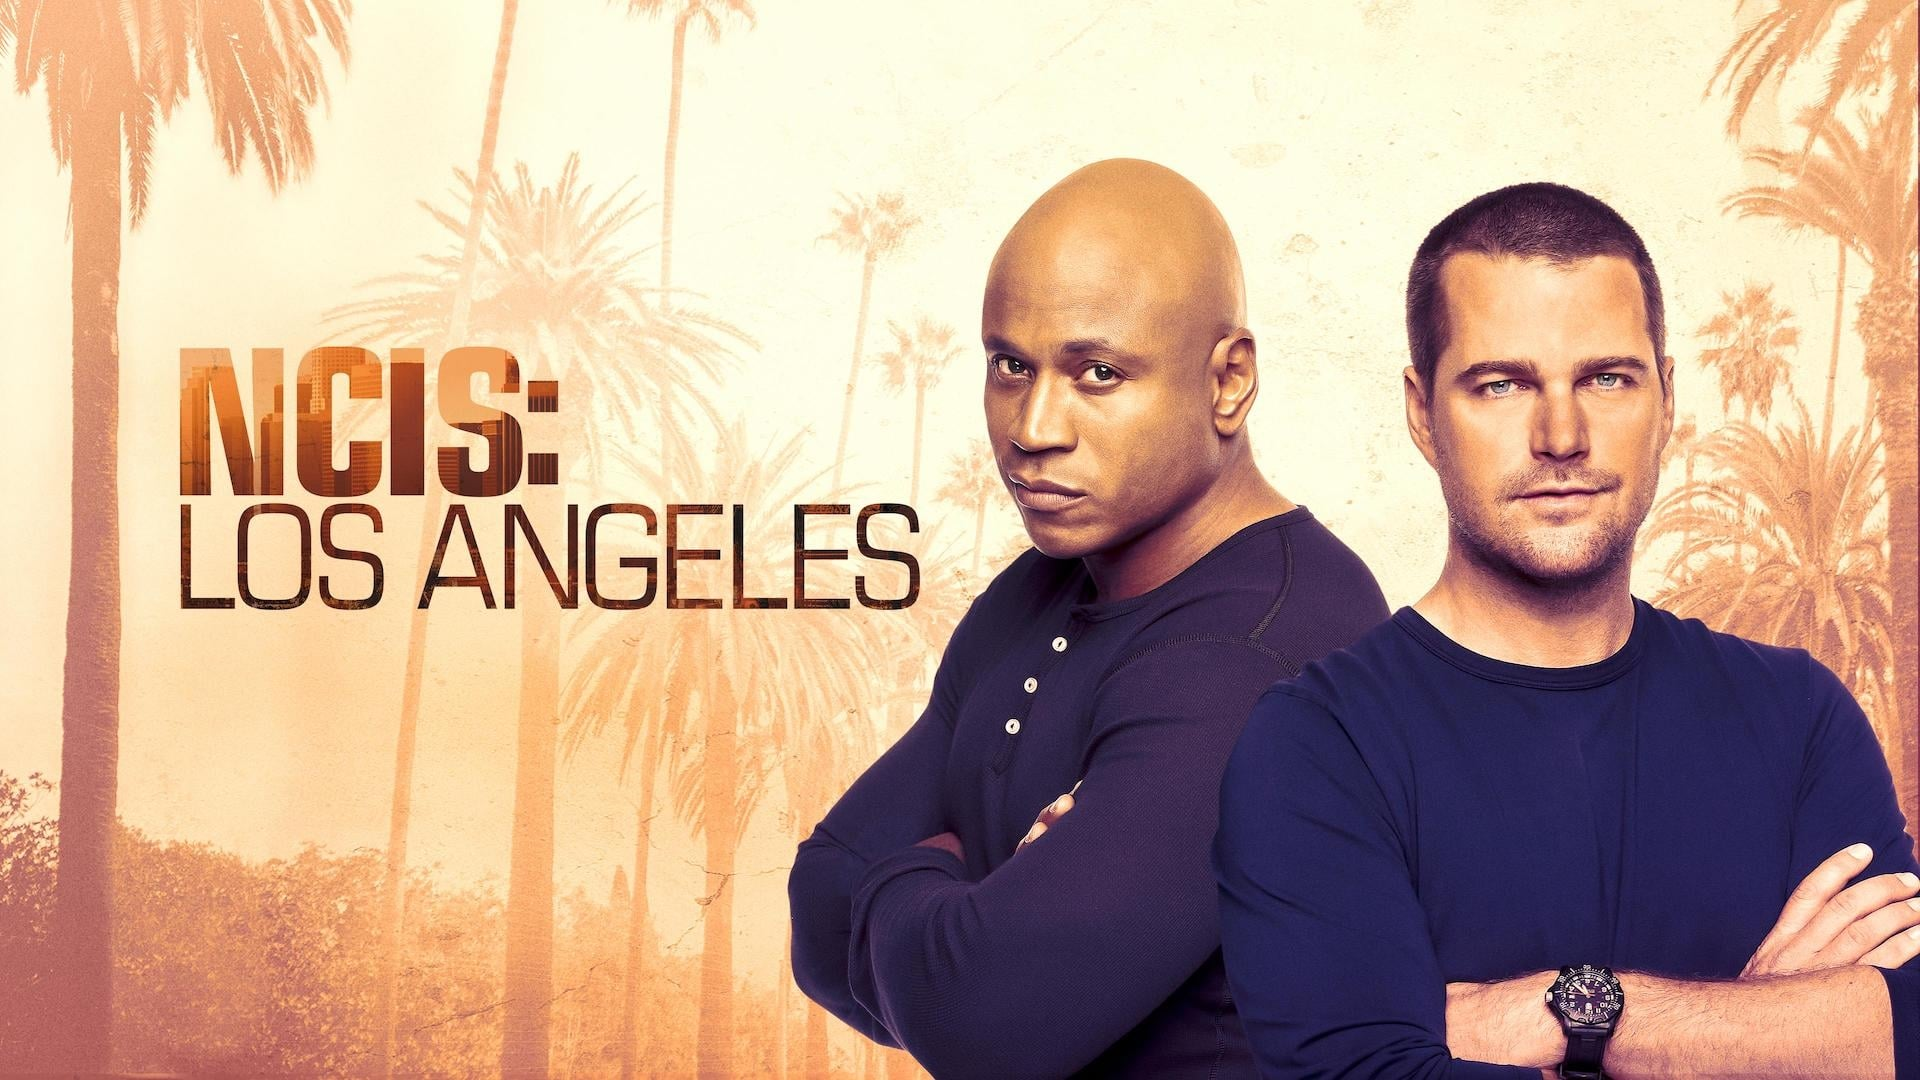 NCIS: Los Angeles Season 4